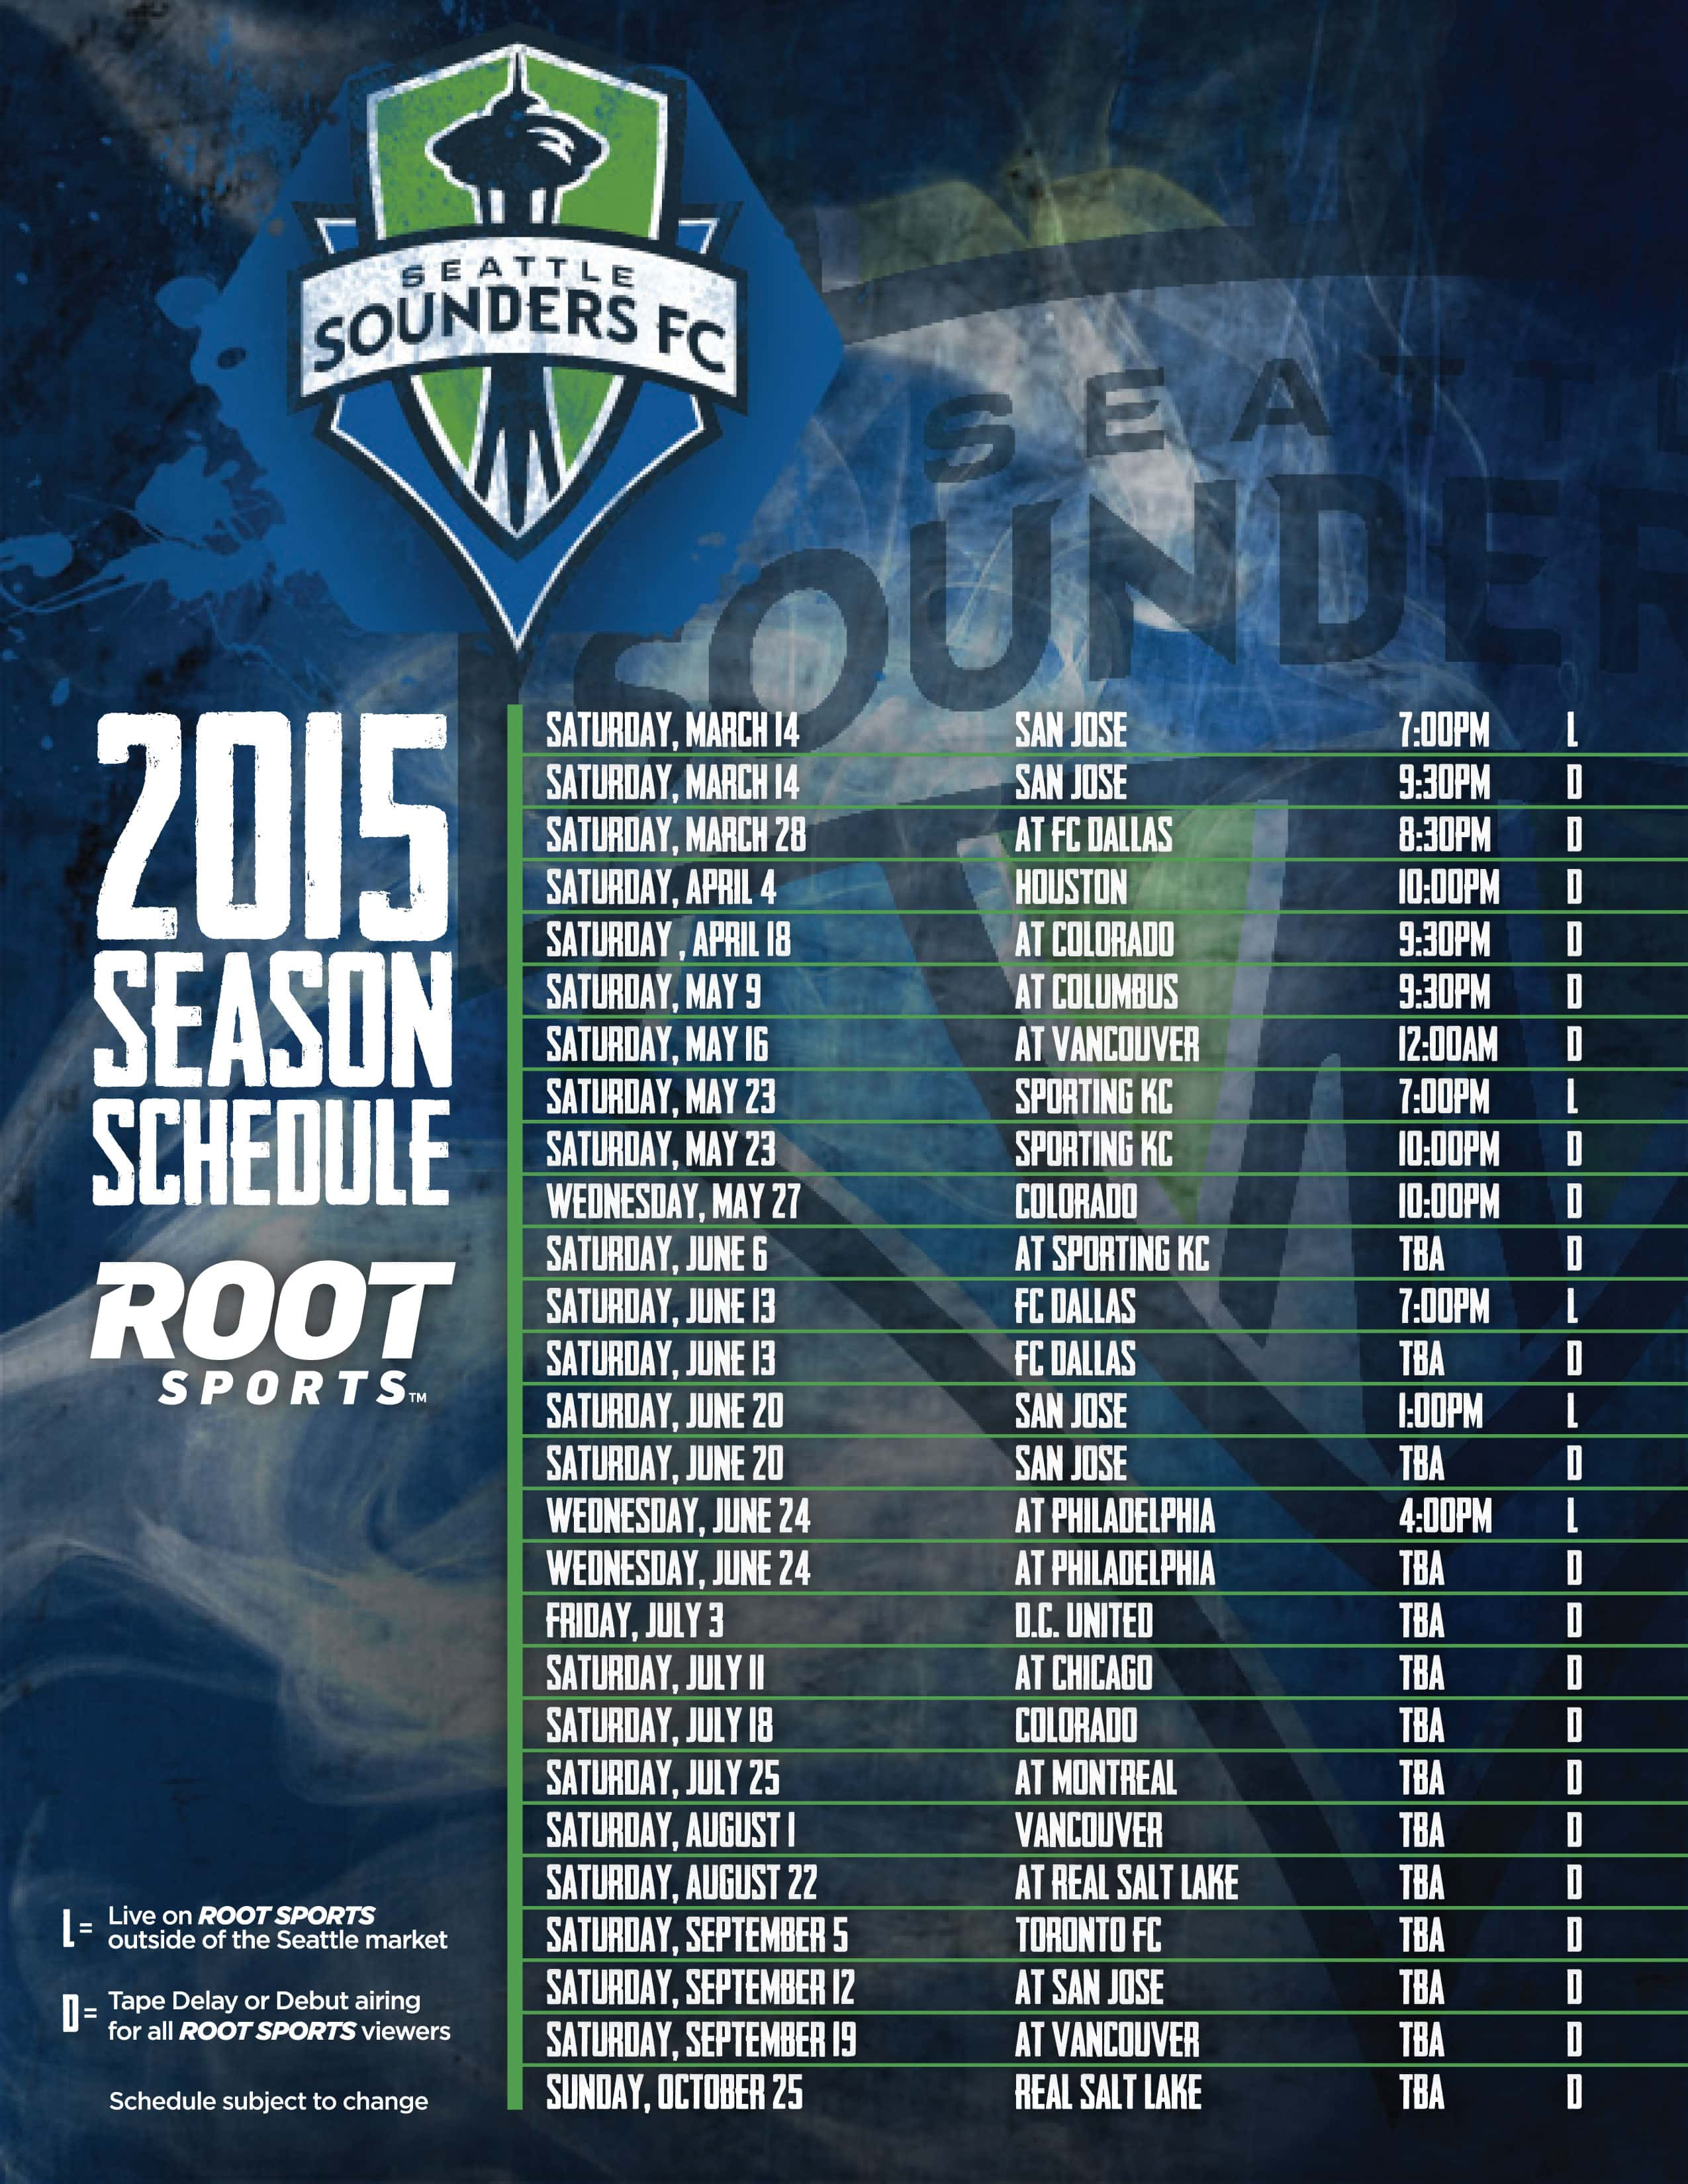 Sounders FC 2013 Schedule Announced by MLS | Seattle Sounders FC